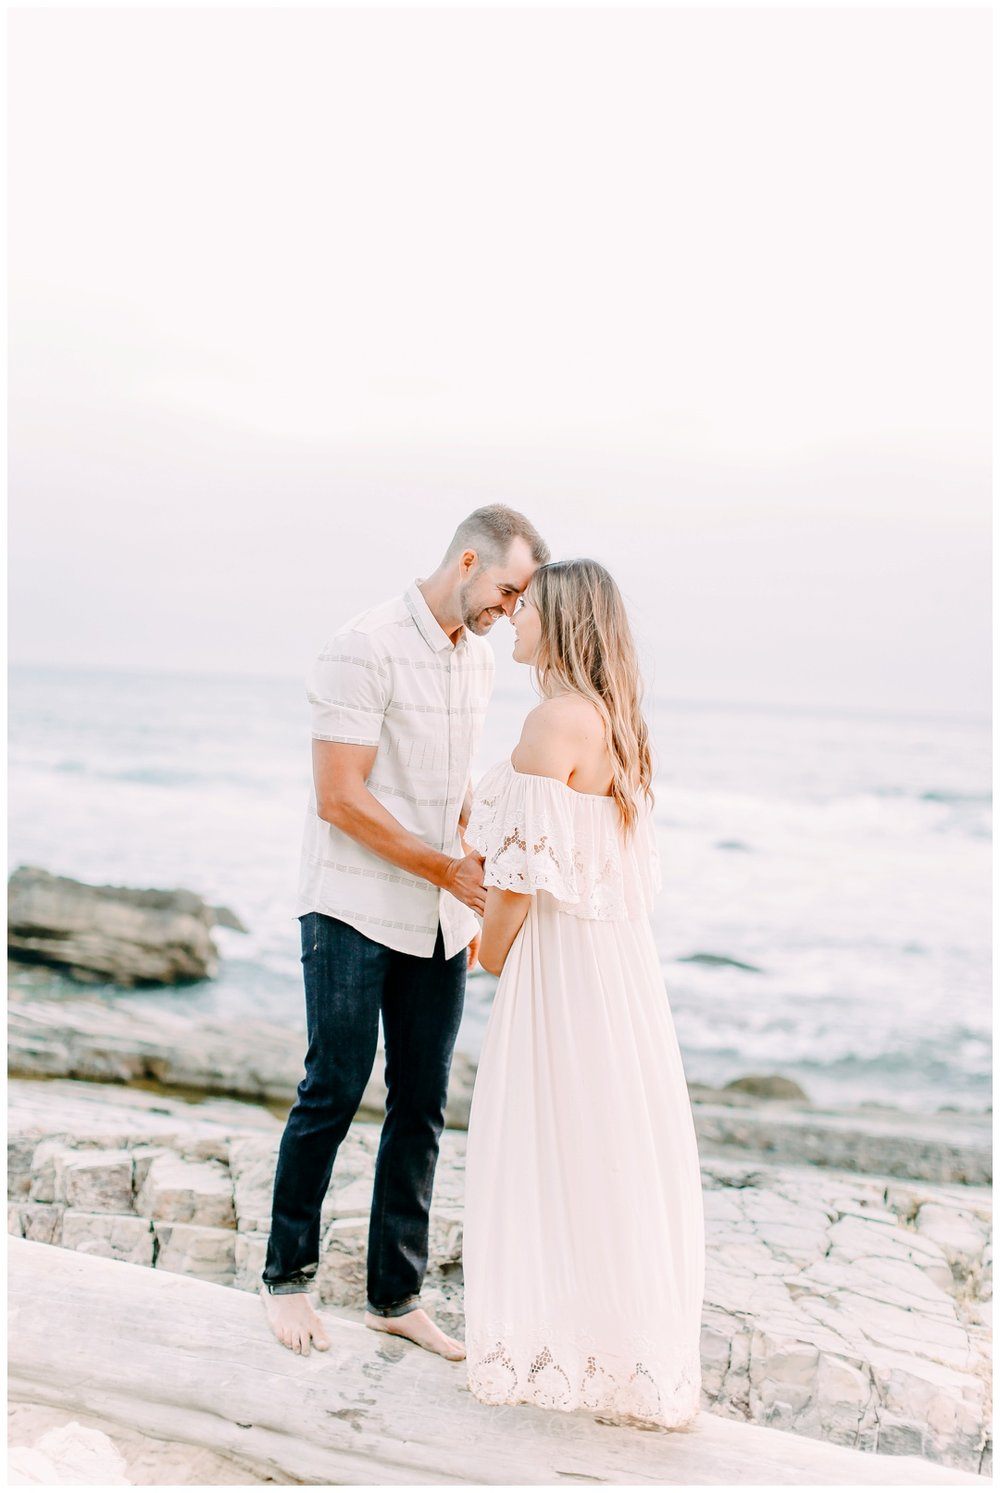 Newport_Beach_Maternity_Photographer_Beach_Maternity_Photography_Cori_Kleckner_Photography_1042.jpg